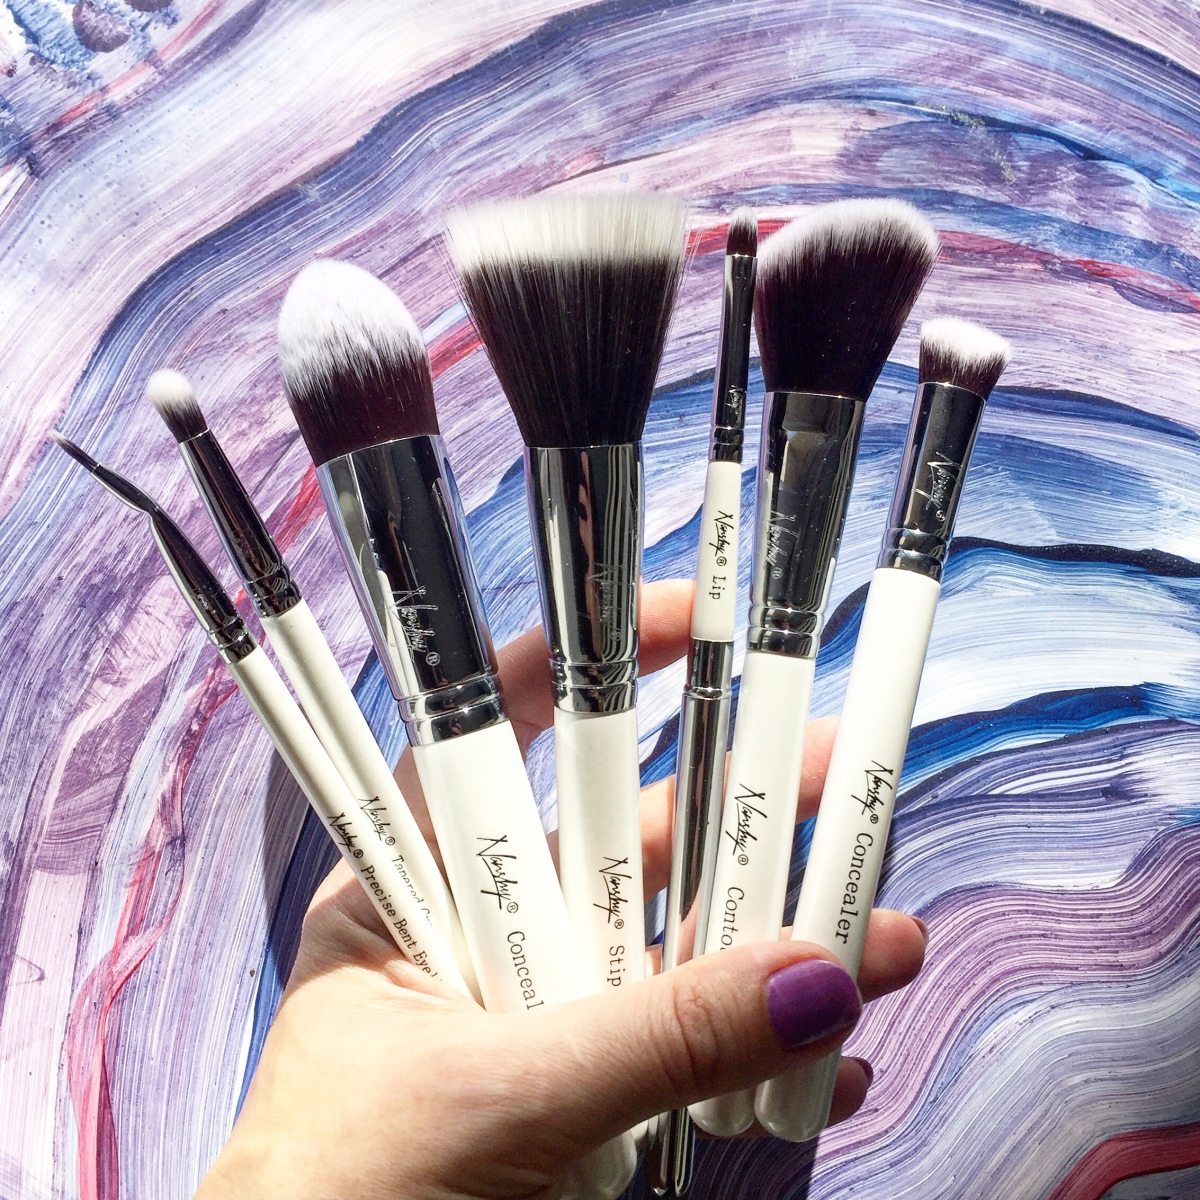 NANSHY VEGAN MAKEUP BRUSHES Haul Review & INTERNATIONAL GIVEAWAY